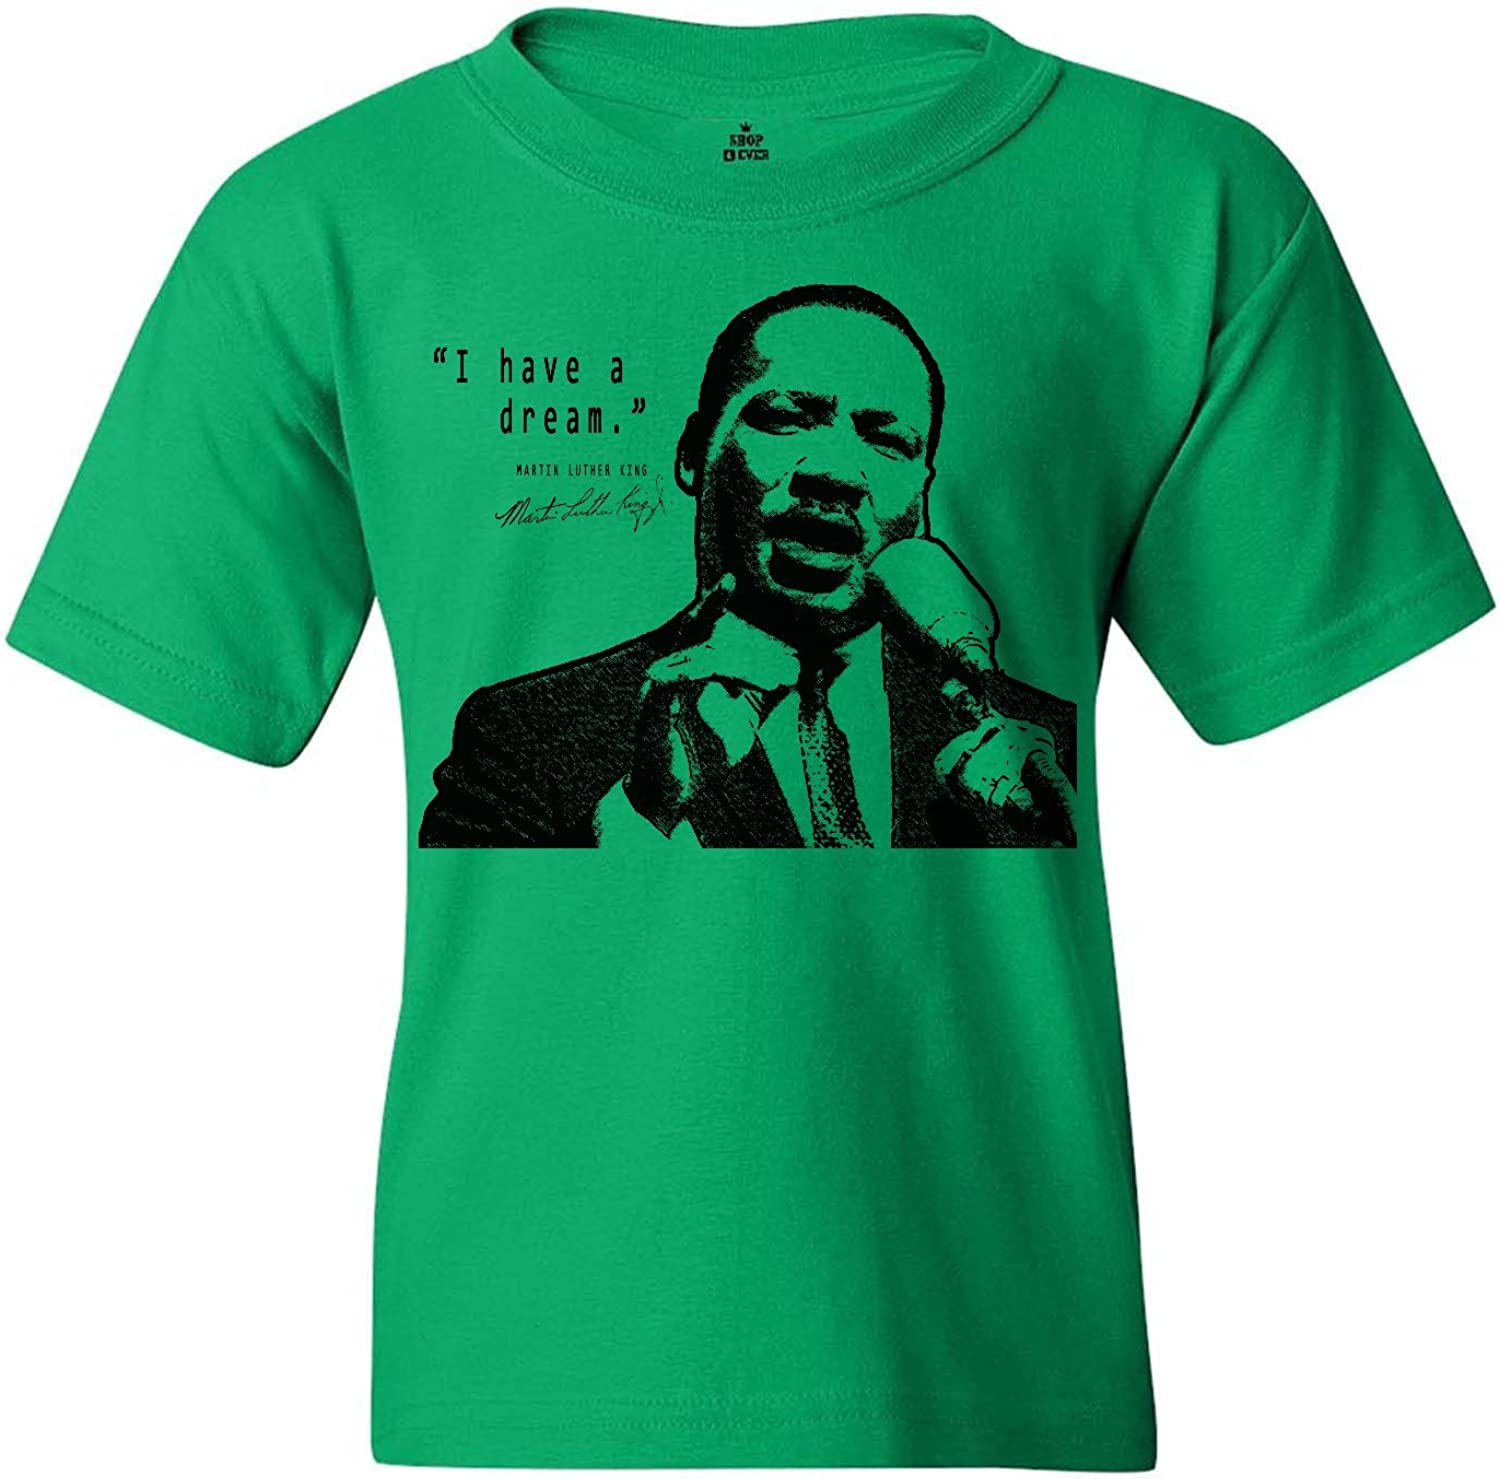 shop4ever I Have A Dream Youth's T-Shirt Martin Luther King Jr. Shirts